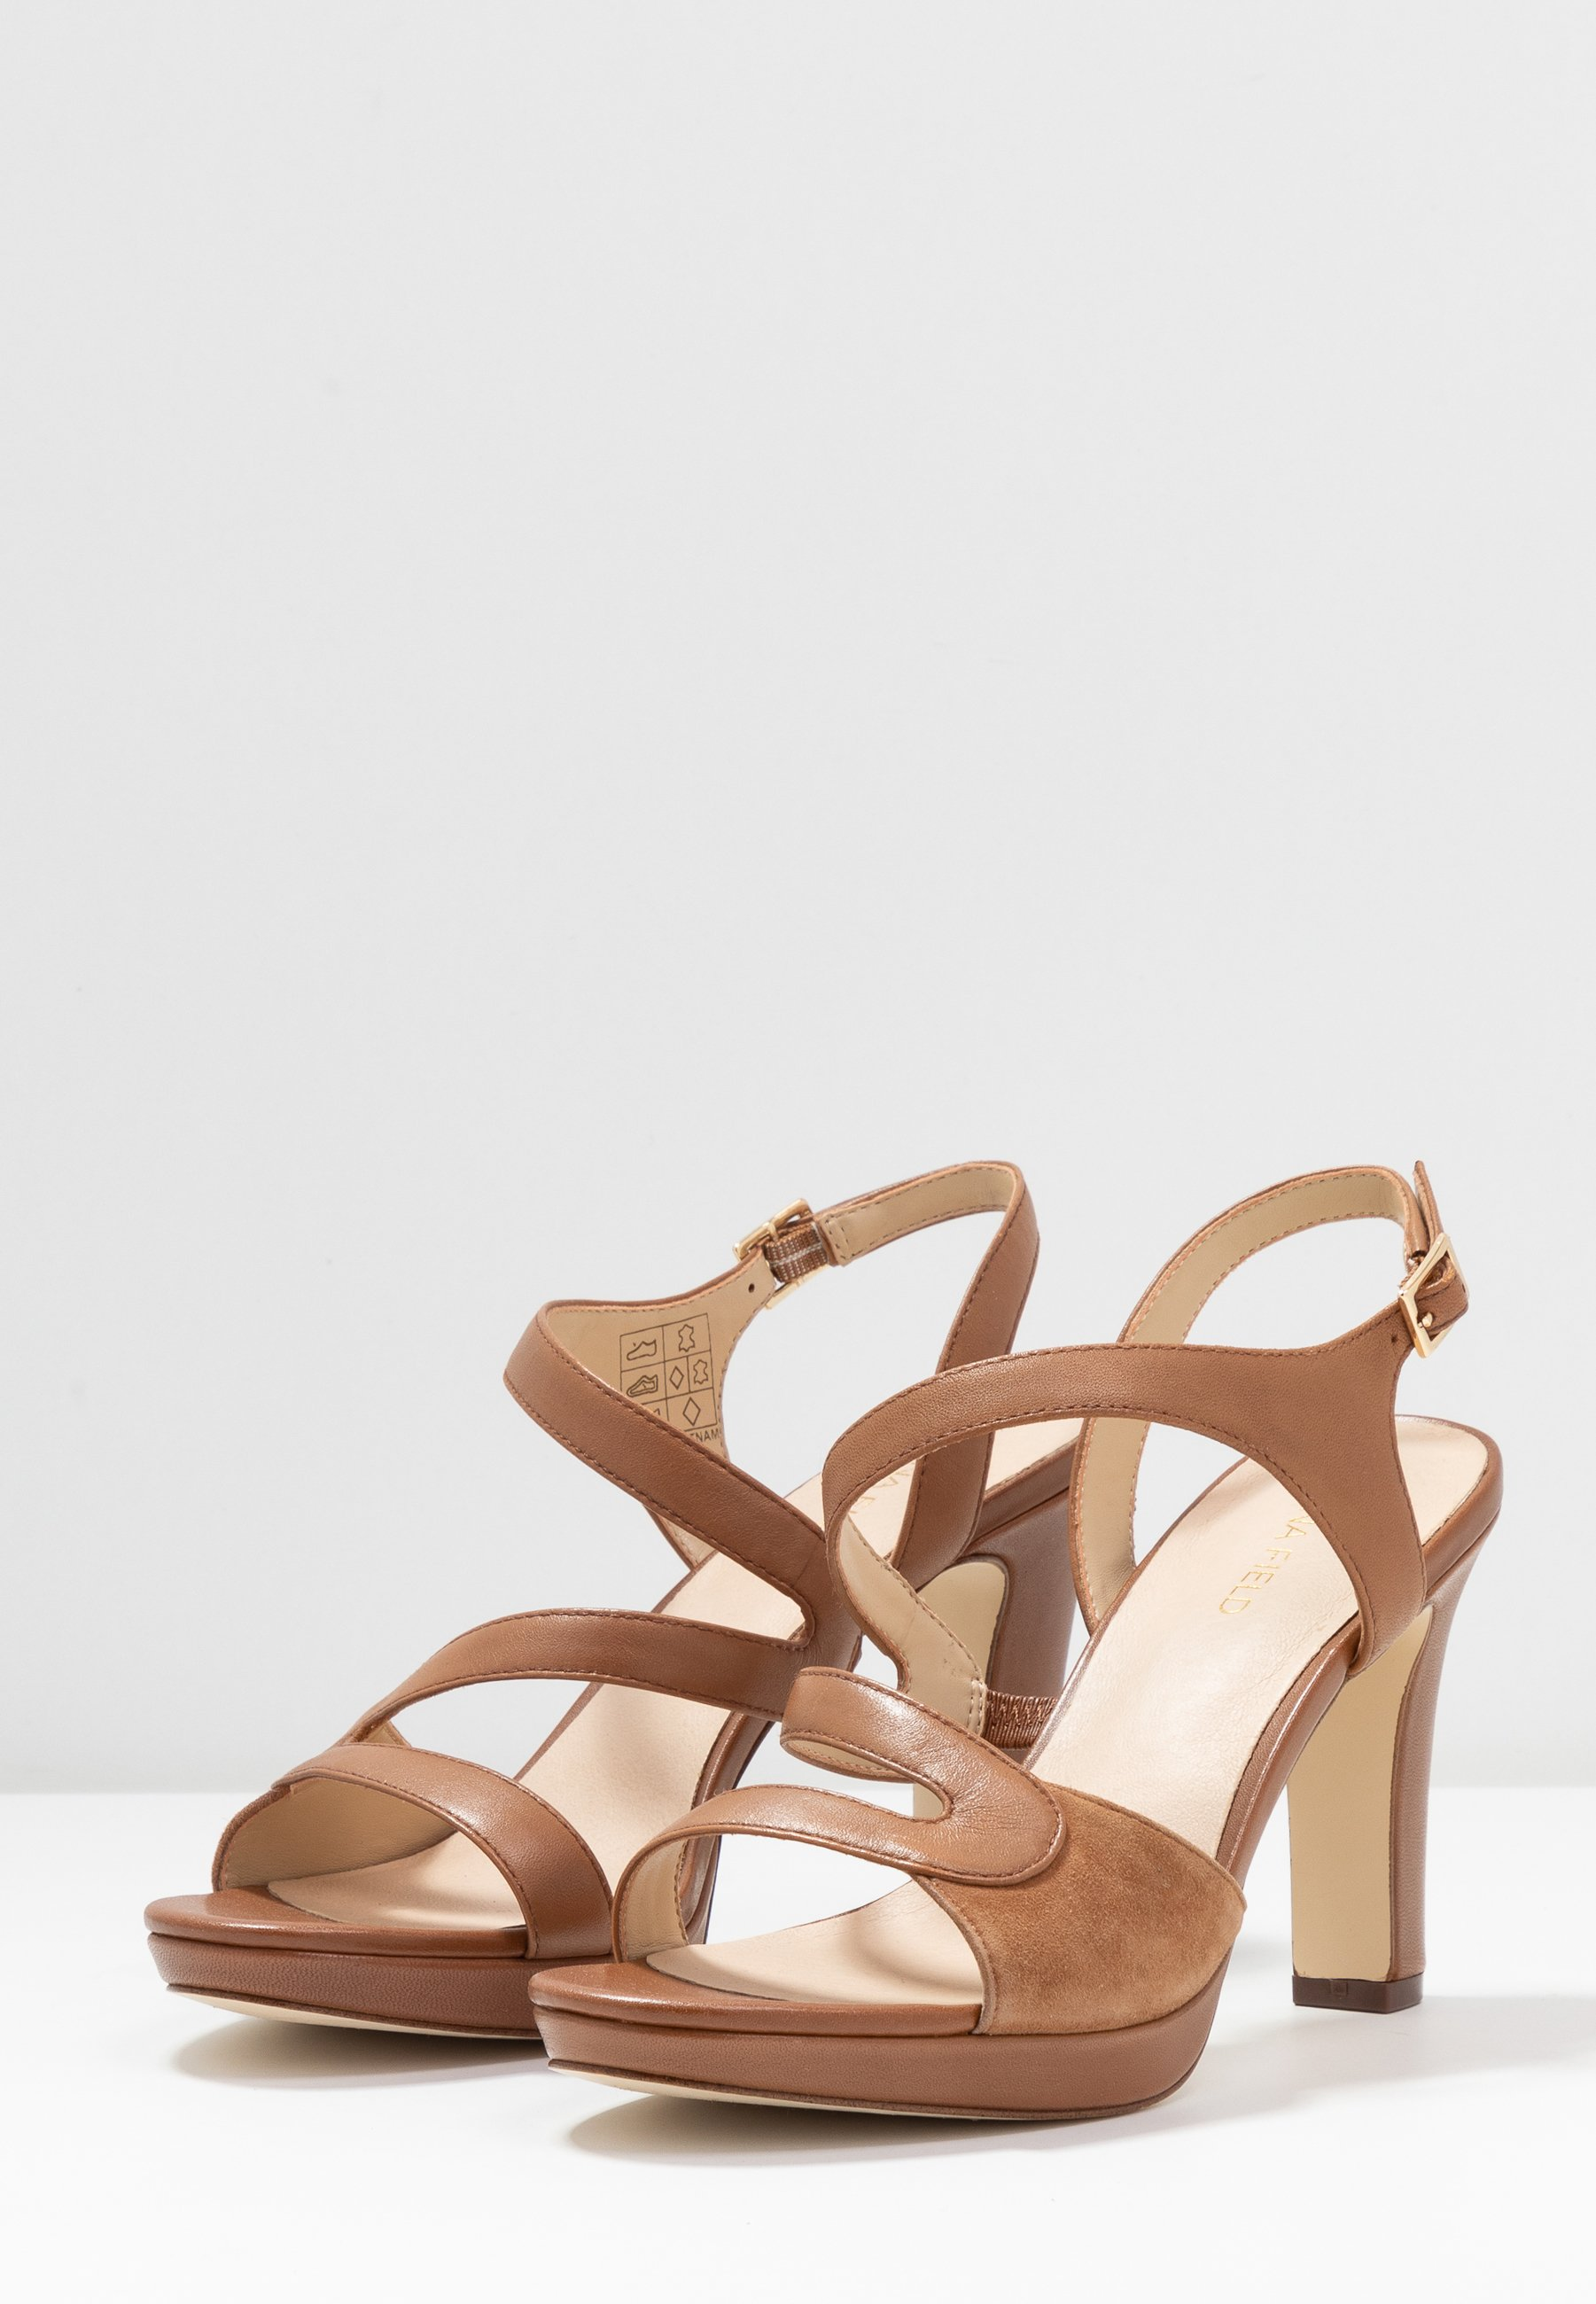 LEATHER HIGH HEELED SANDALS High Heel Sandalette cognac